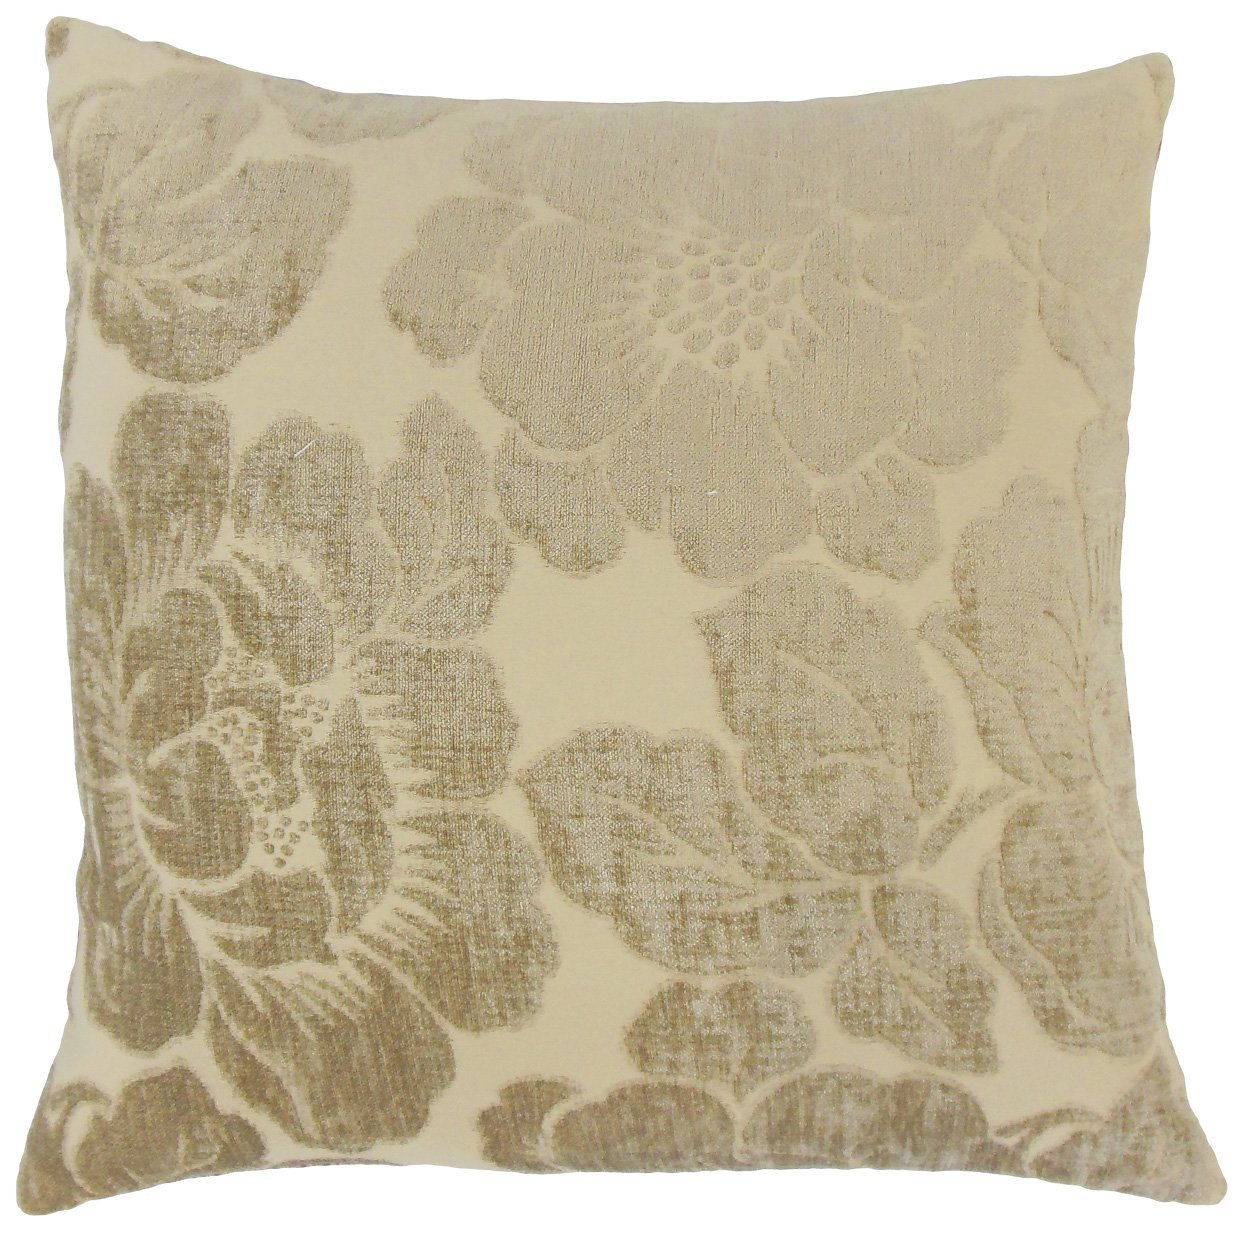 The Pillow Collection Sarafina Floral Bedding Sham Linen King//20 x 36